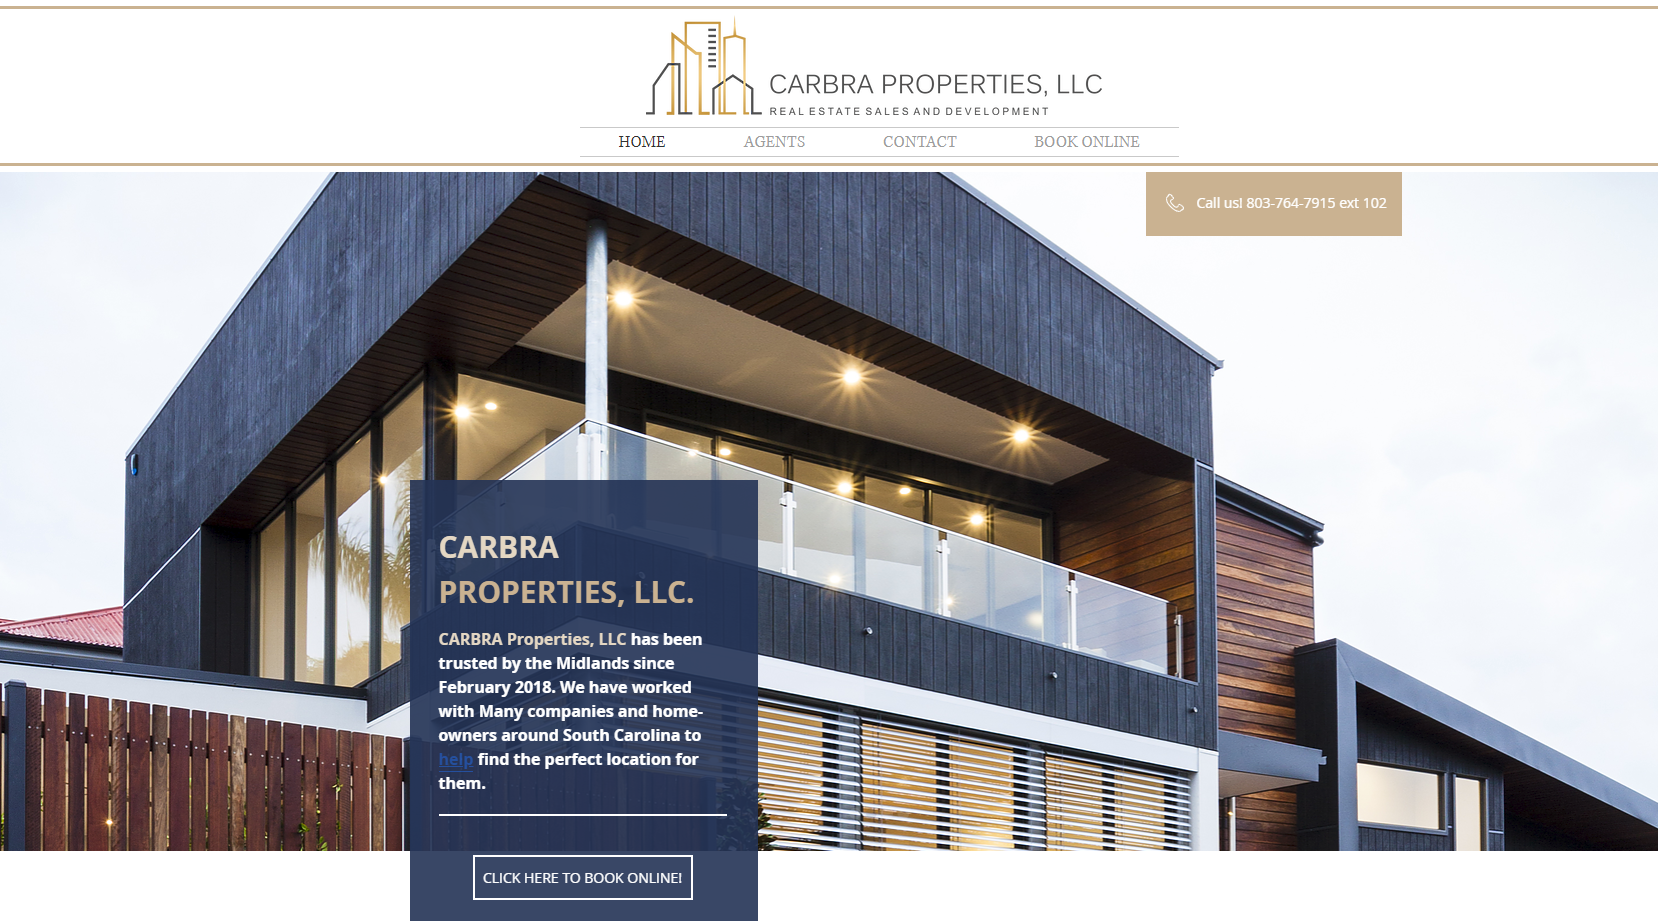 CARBRA Properties, LLC